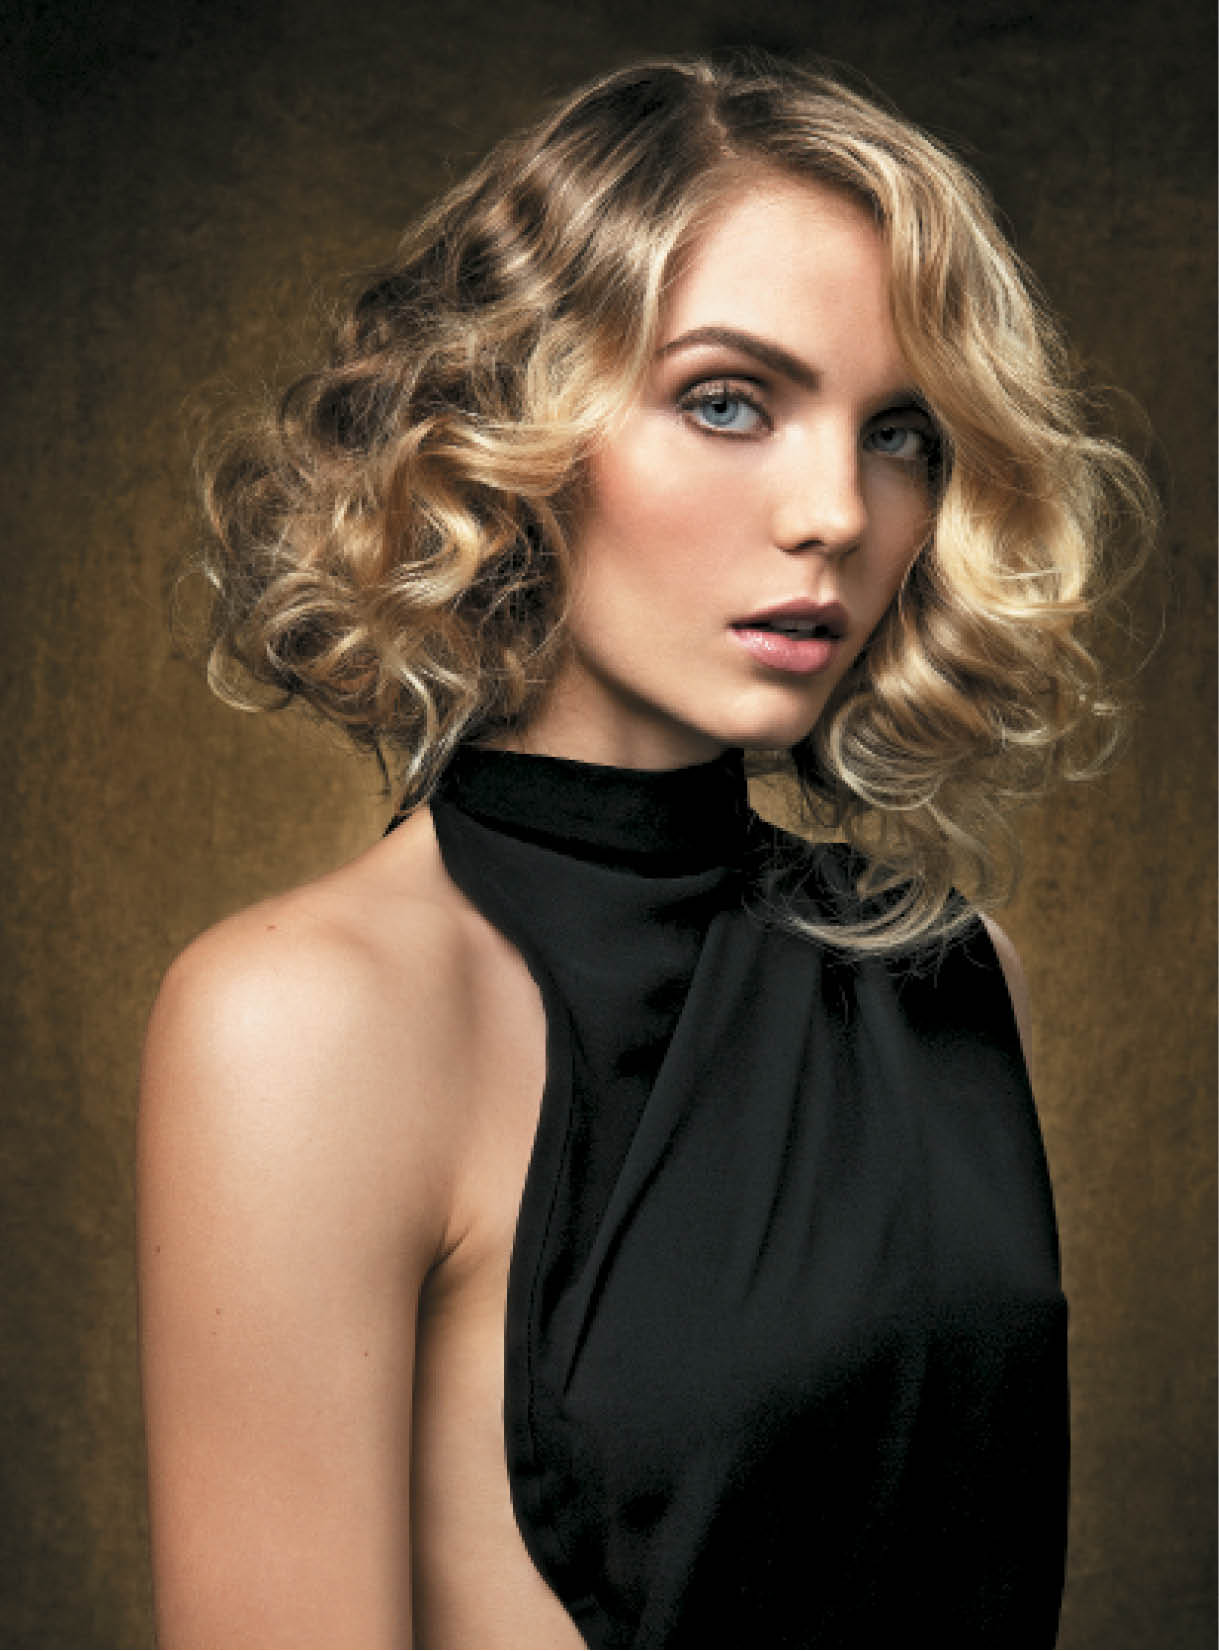 """Amy Poehler's blonde highlight accents at the 2014 Golden Globes inspired this look, which was enhanced by the defined curls in this 'old Hollywood' style,"" Cunningham says."